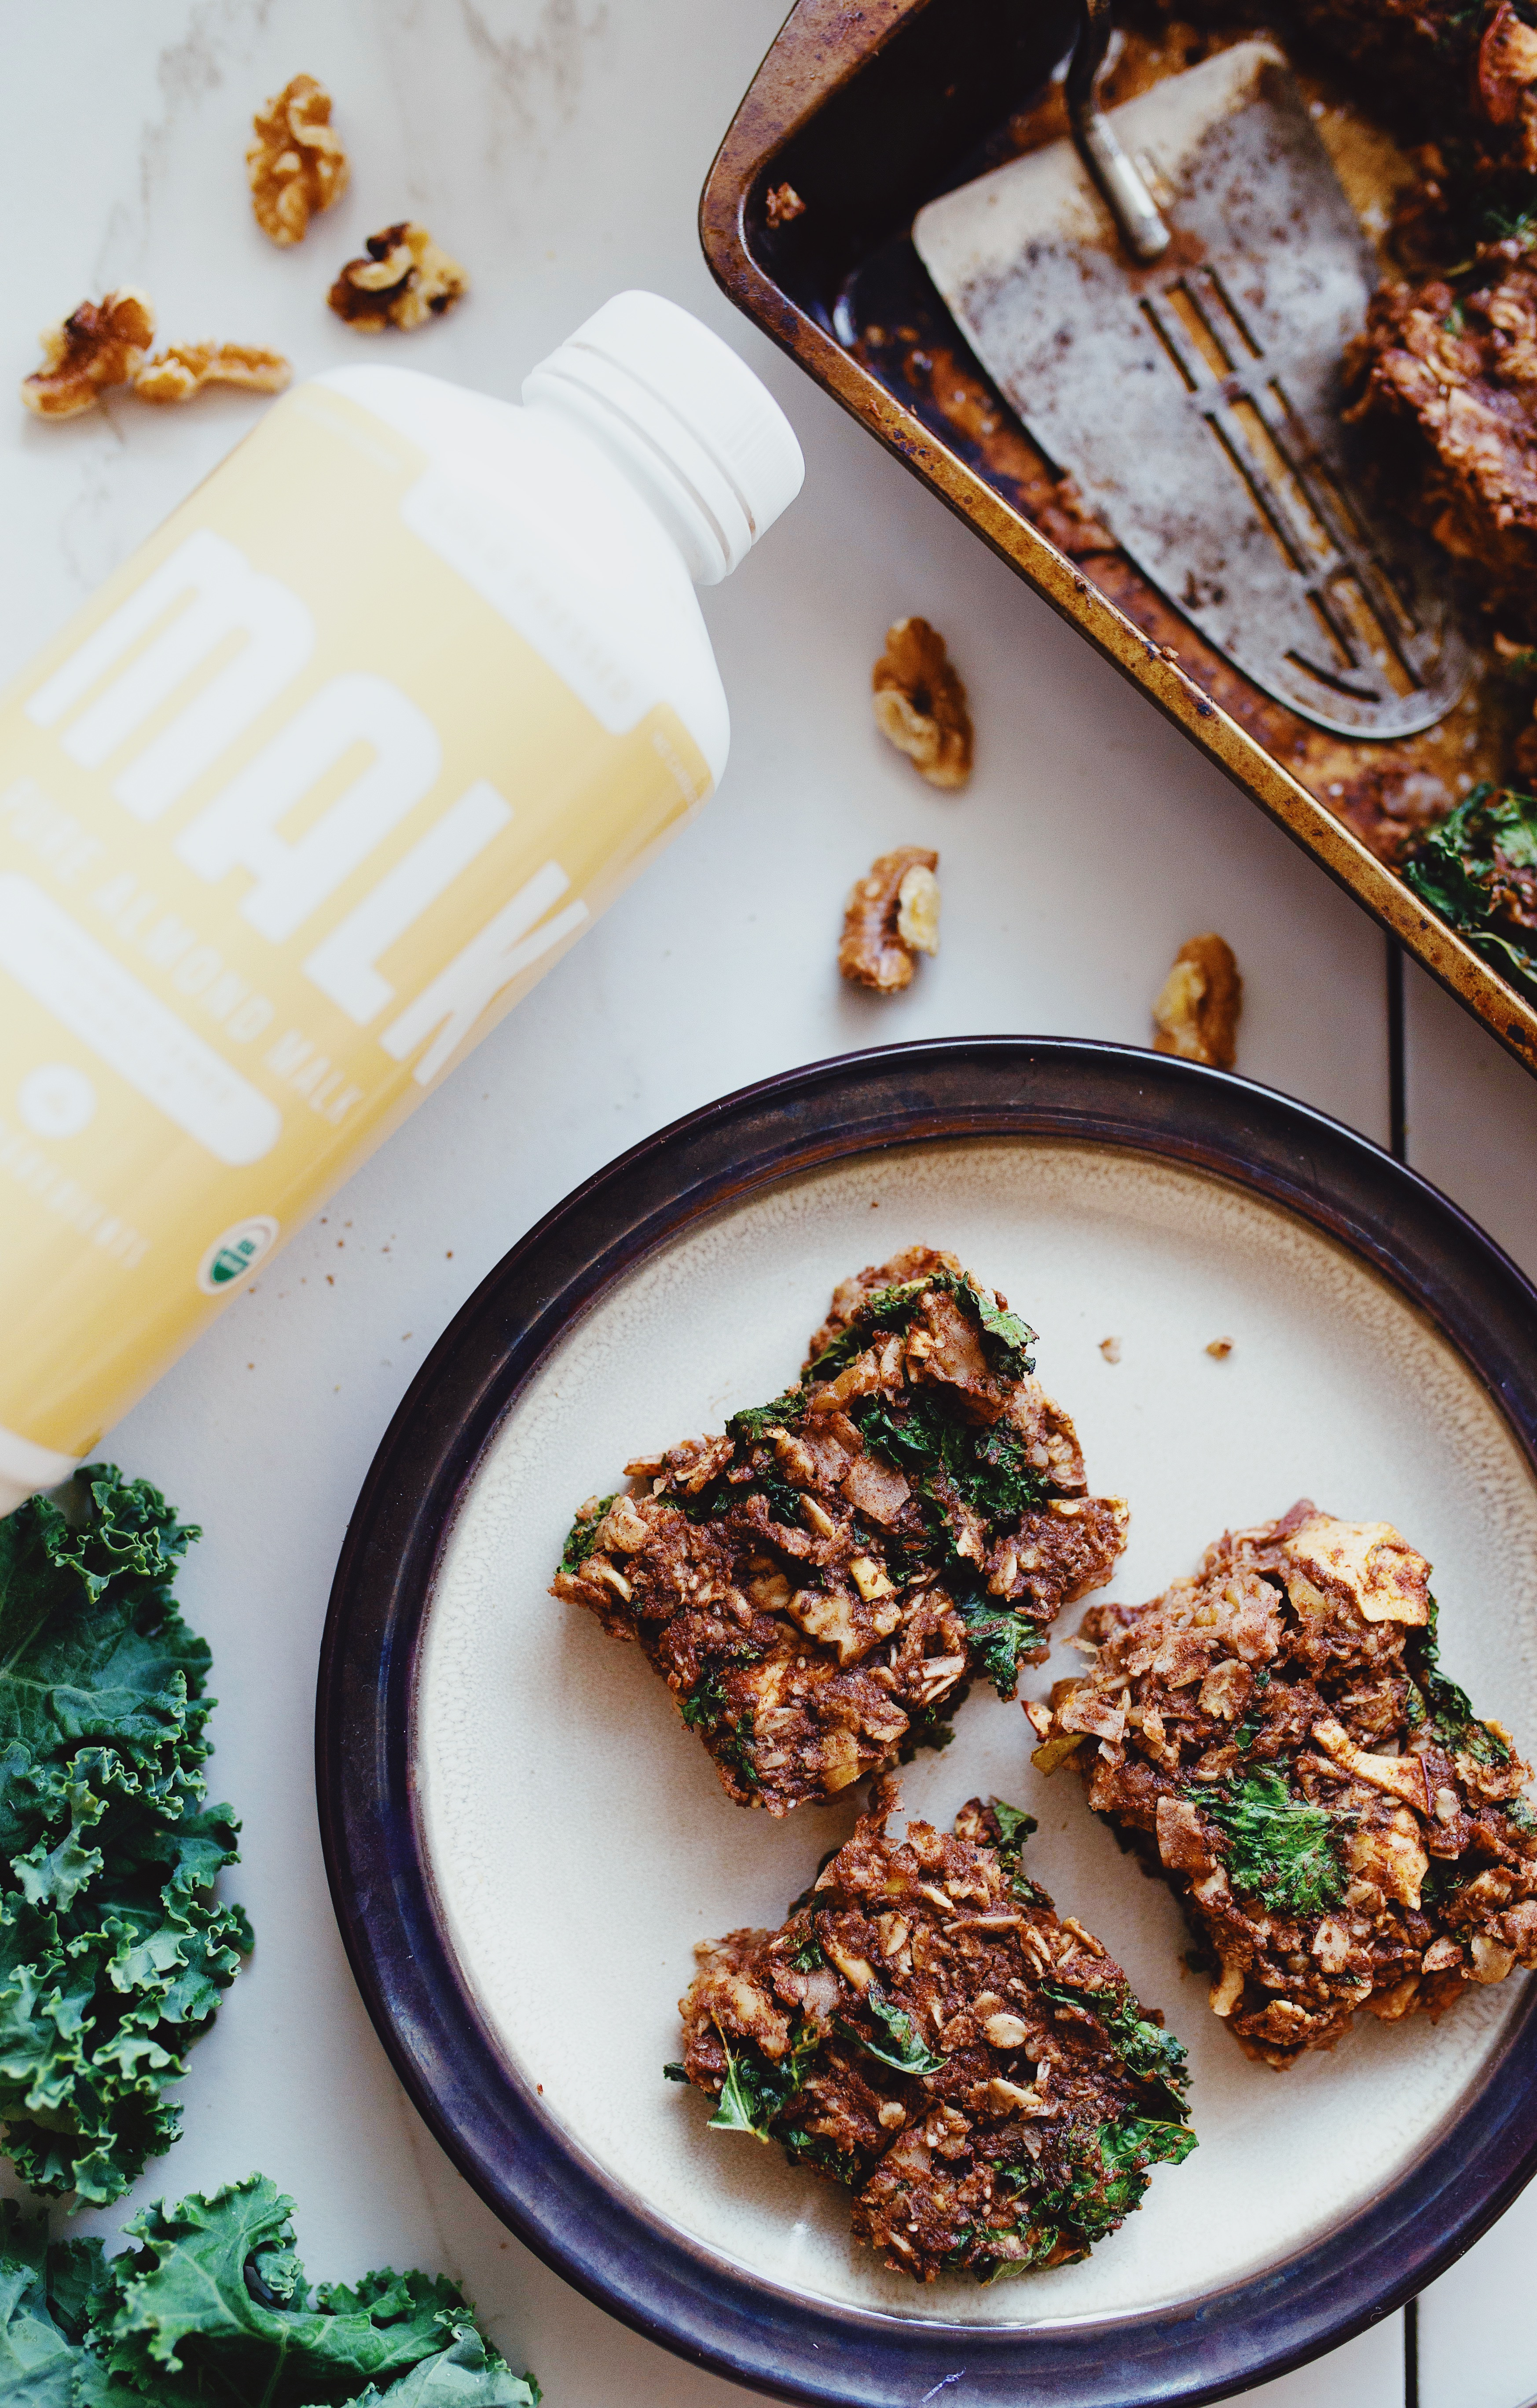 Oat and Kale Superfood Bars